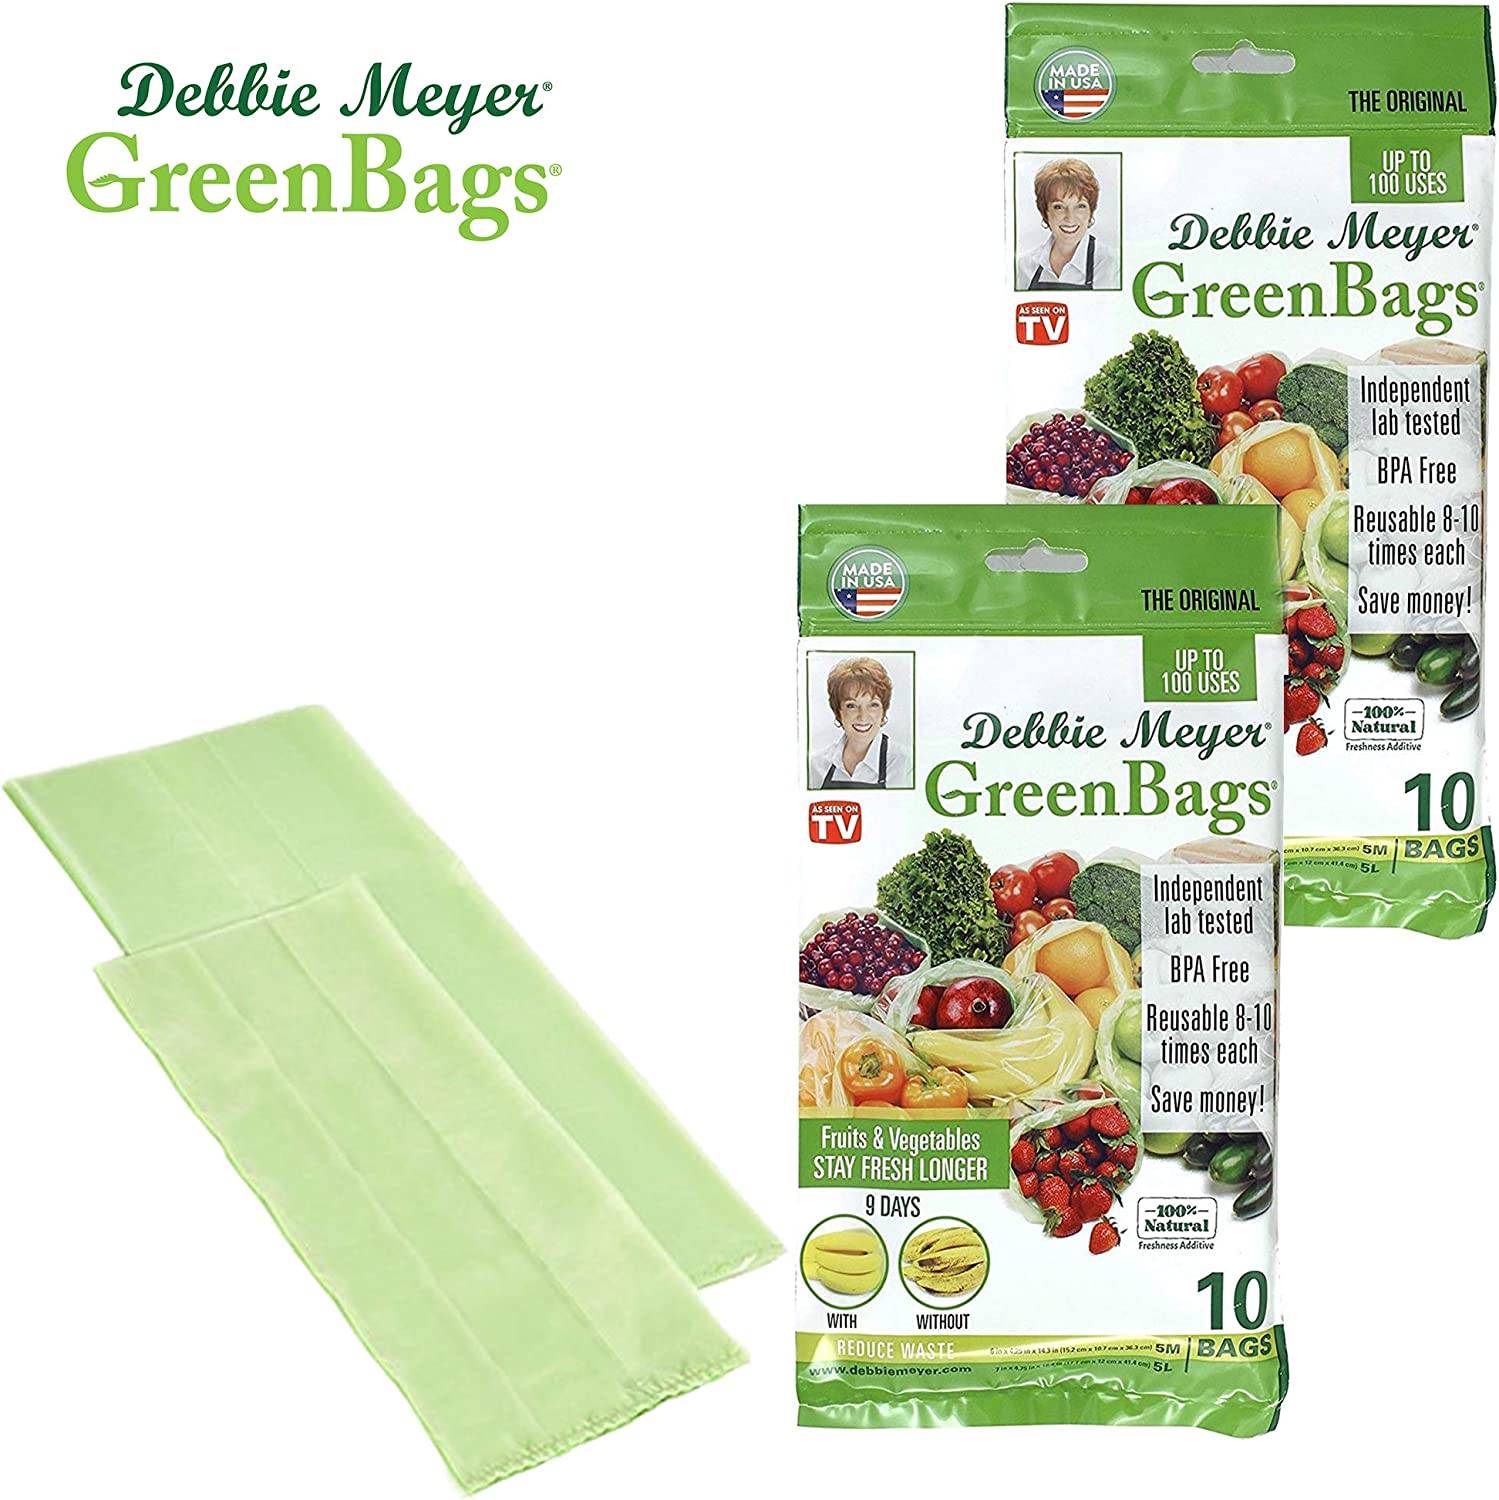 Debbie Meyer GreenBags - Reusable BPA Free Food Storage Bags, Keep Fruits and Vegetables Fresher Longer in these GreenBags!20 Pack (10 Medium, 10 Large)